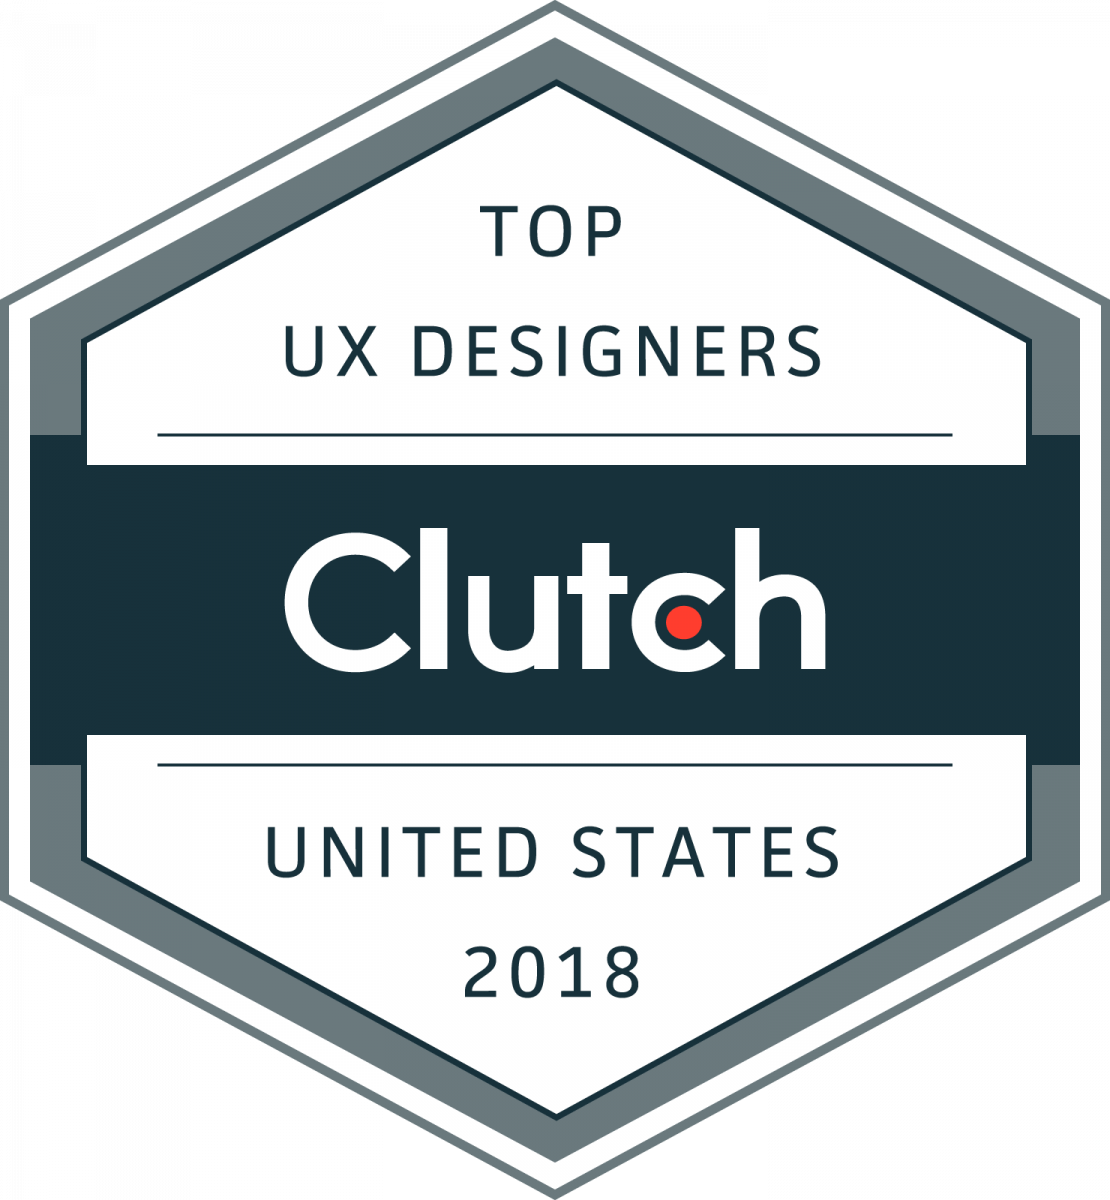 Top UX Designers, United States